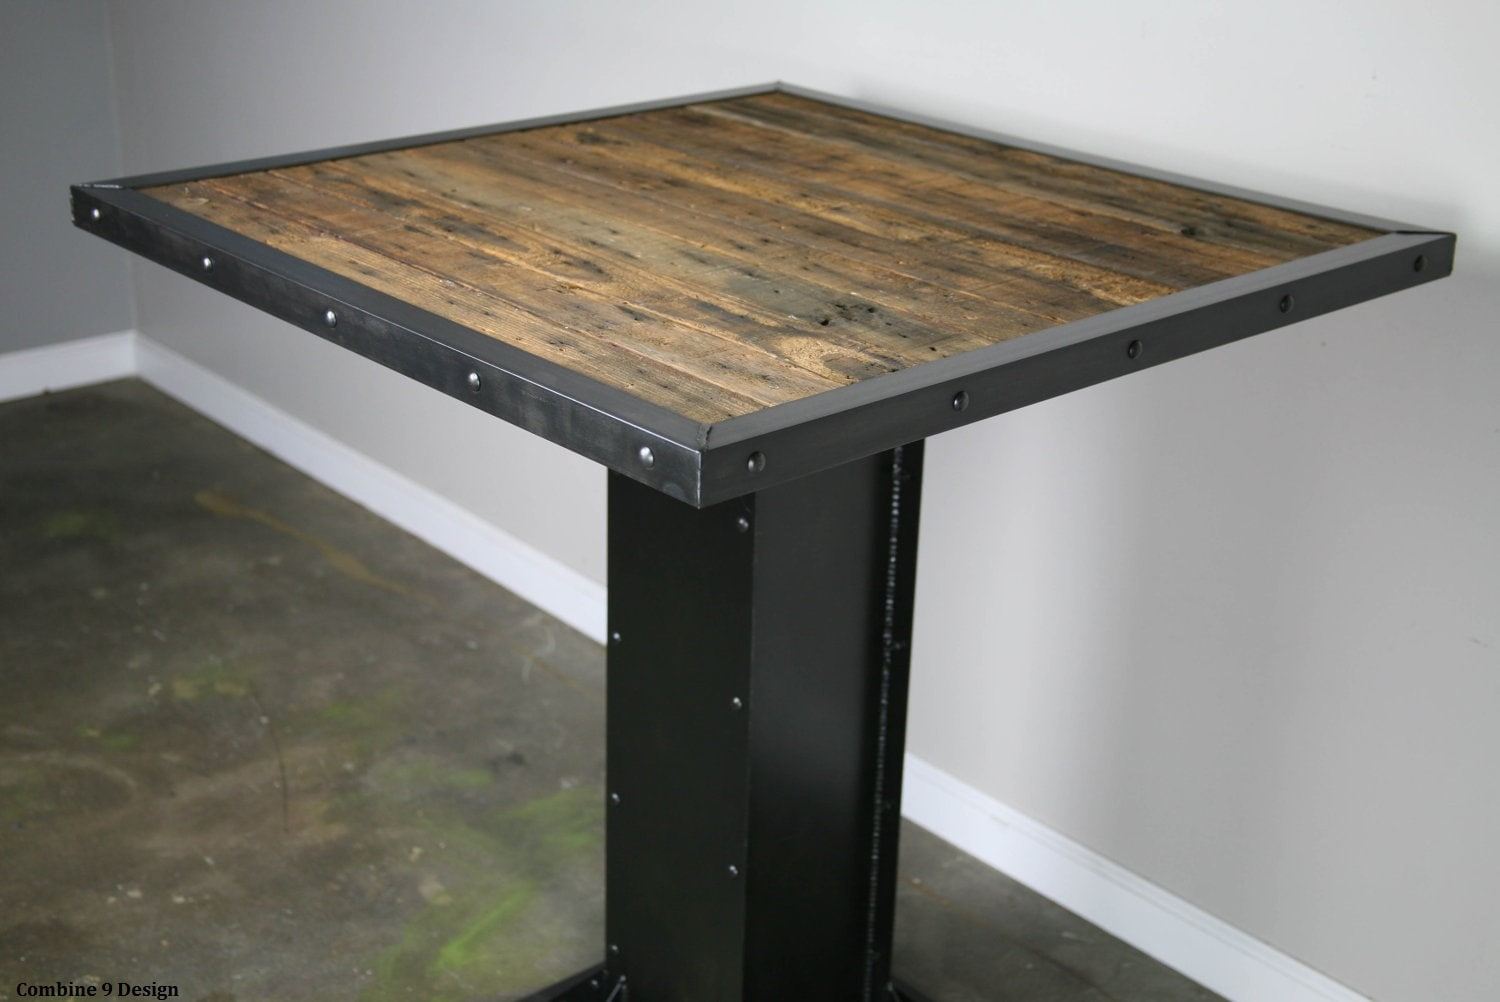 Bistro dining table modern industrial design reclaimed wood for Innovative table